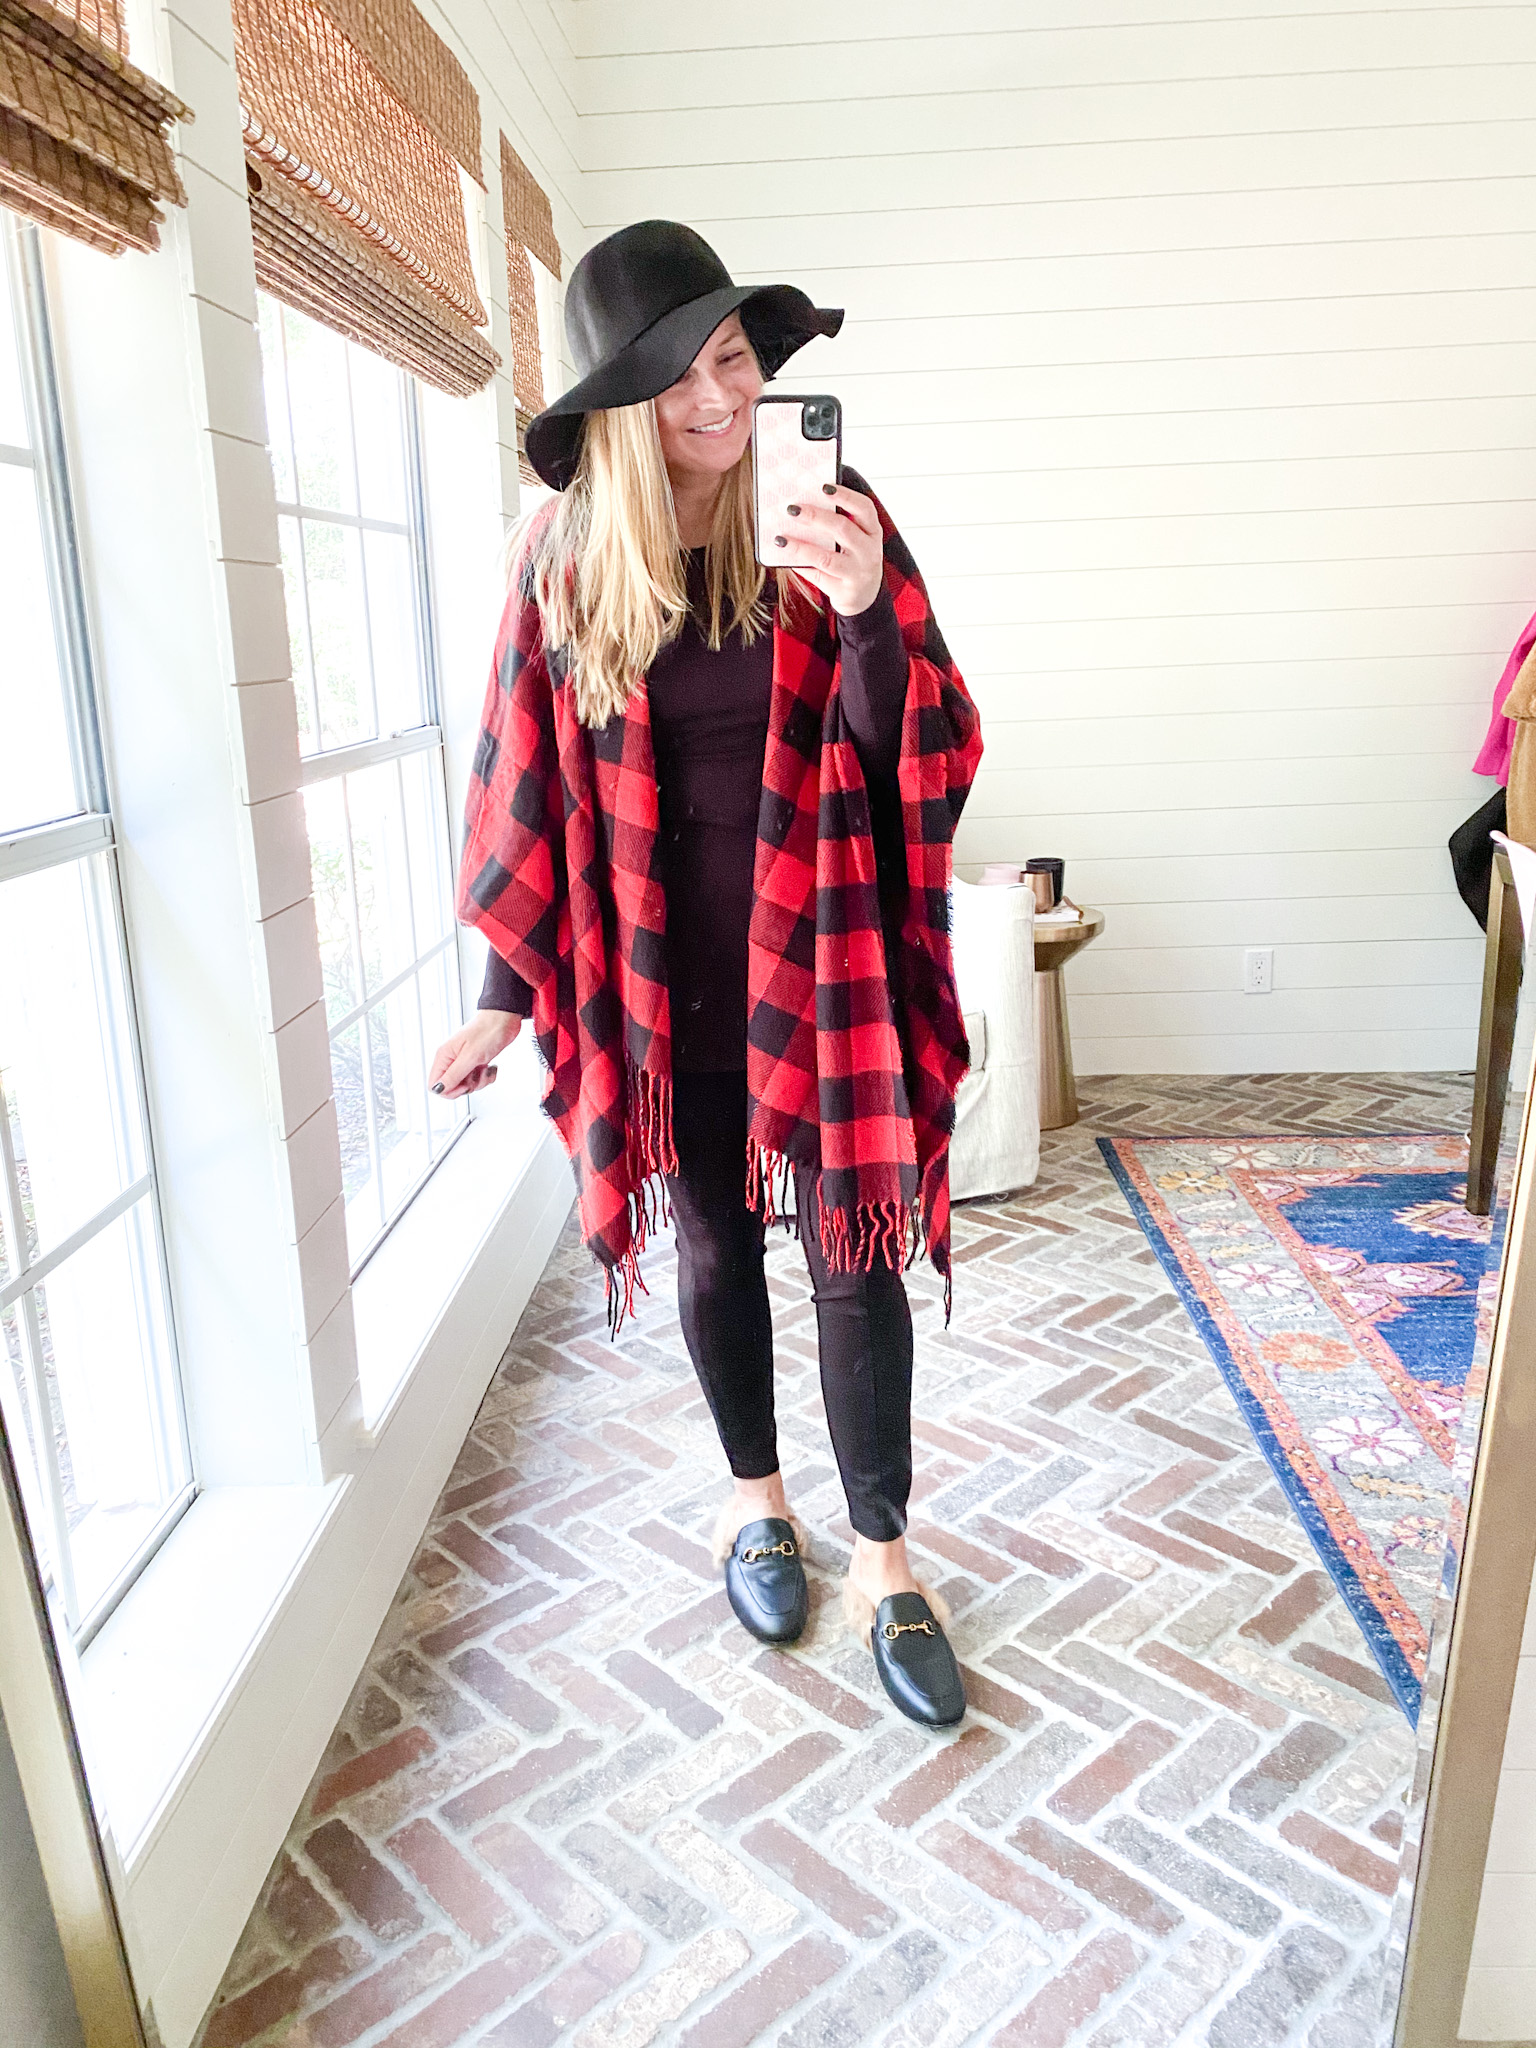 Prime Day by popular Houston fashion blog, Fancy Ashley: image of a woman wearing a Amazon black and red buffalo plaid poncho, felt floppy hat, black leggings, and black mules.